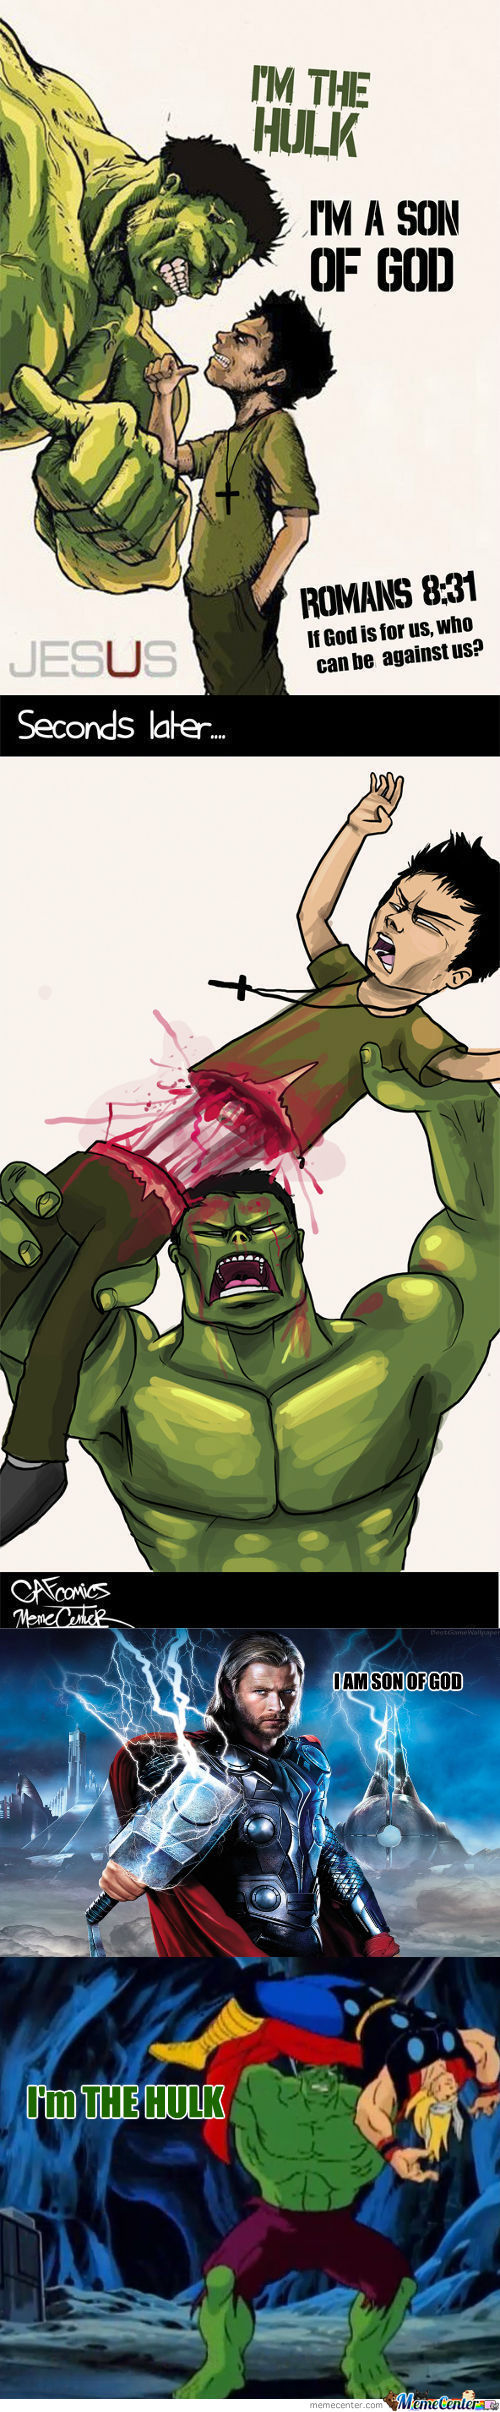 [RMX] Don't F*ck With The Hulk